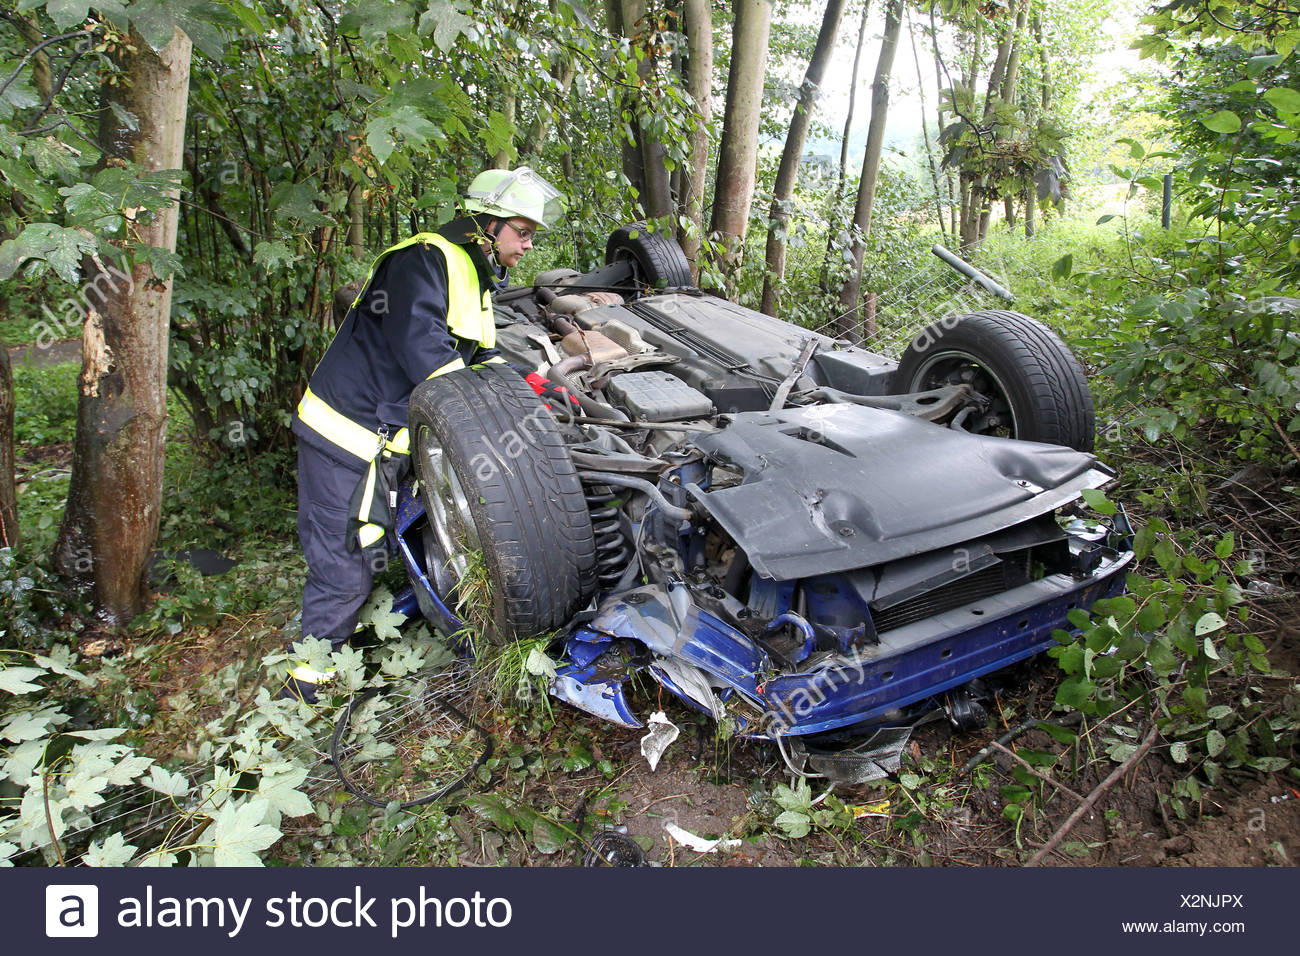 Firefighter attending a car wreck after an accident on the A48 Autobahn, motorway, Hoehr-Grenzhausen, Rhineland-Palatinate - Stock Image